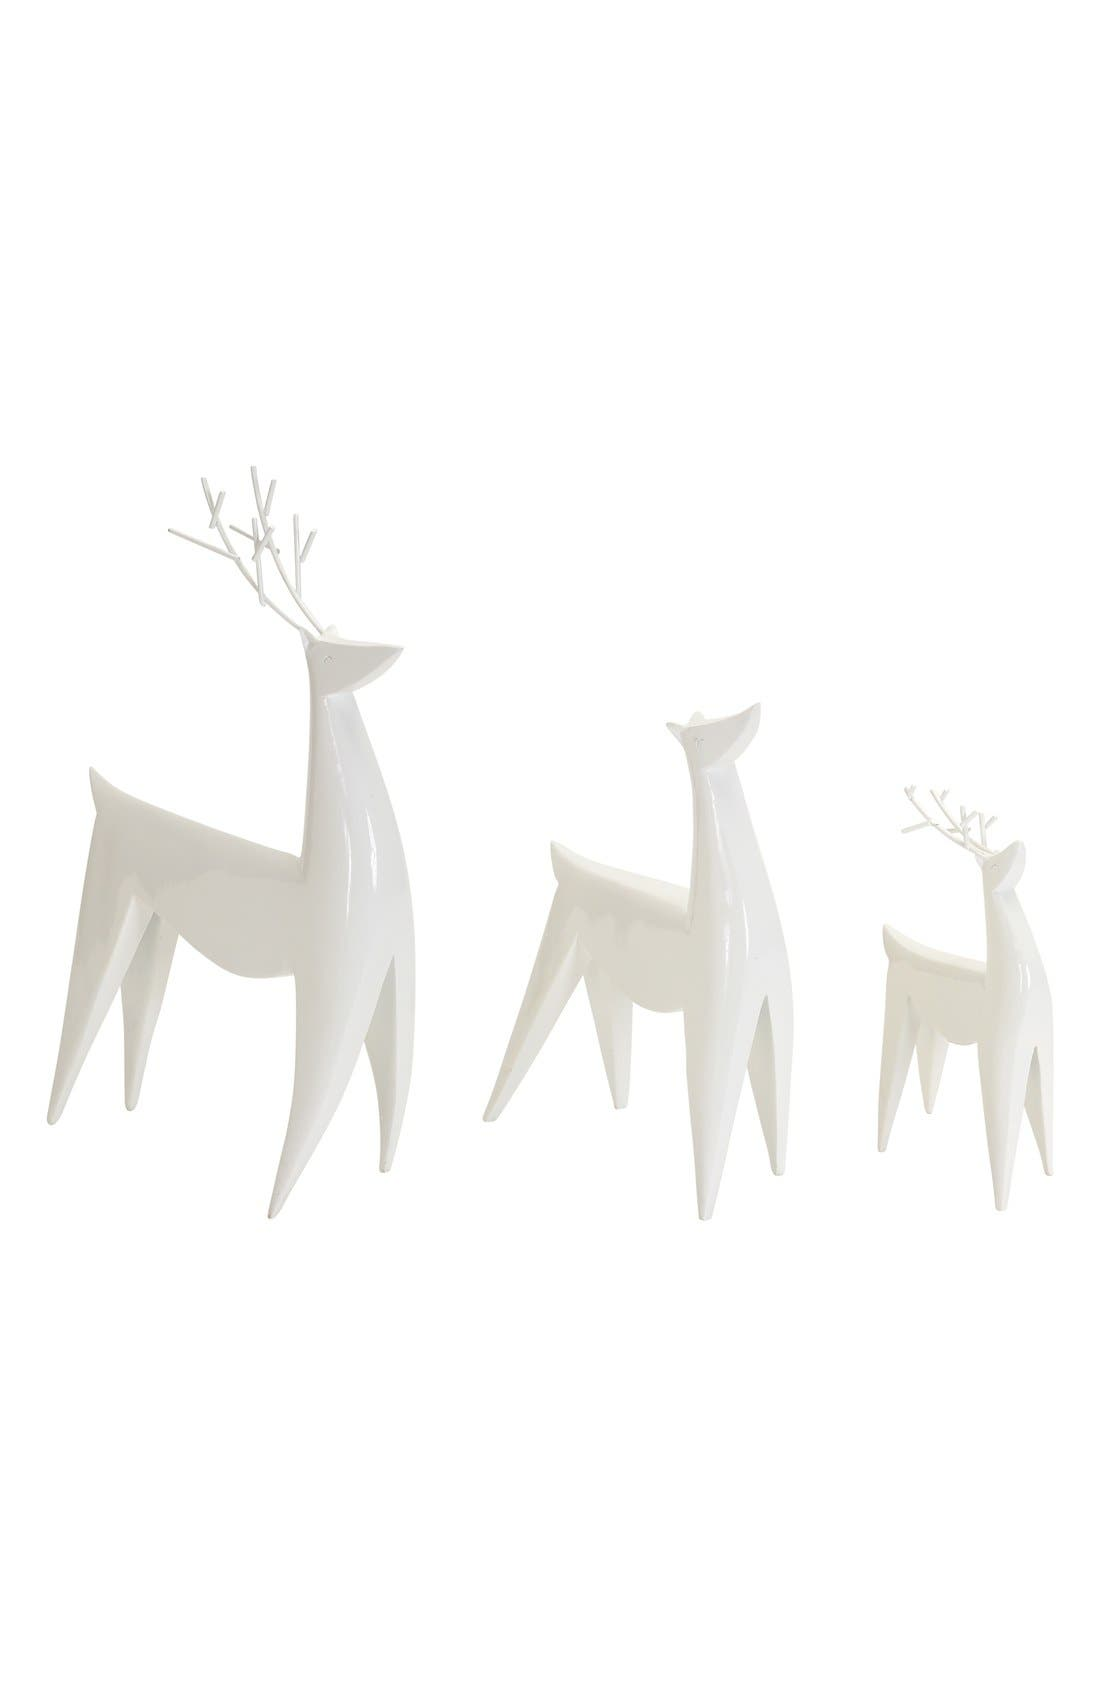 Deer Figurines,                             Main thumbnail 1, color,                             100